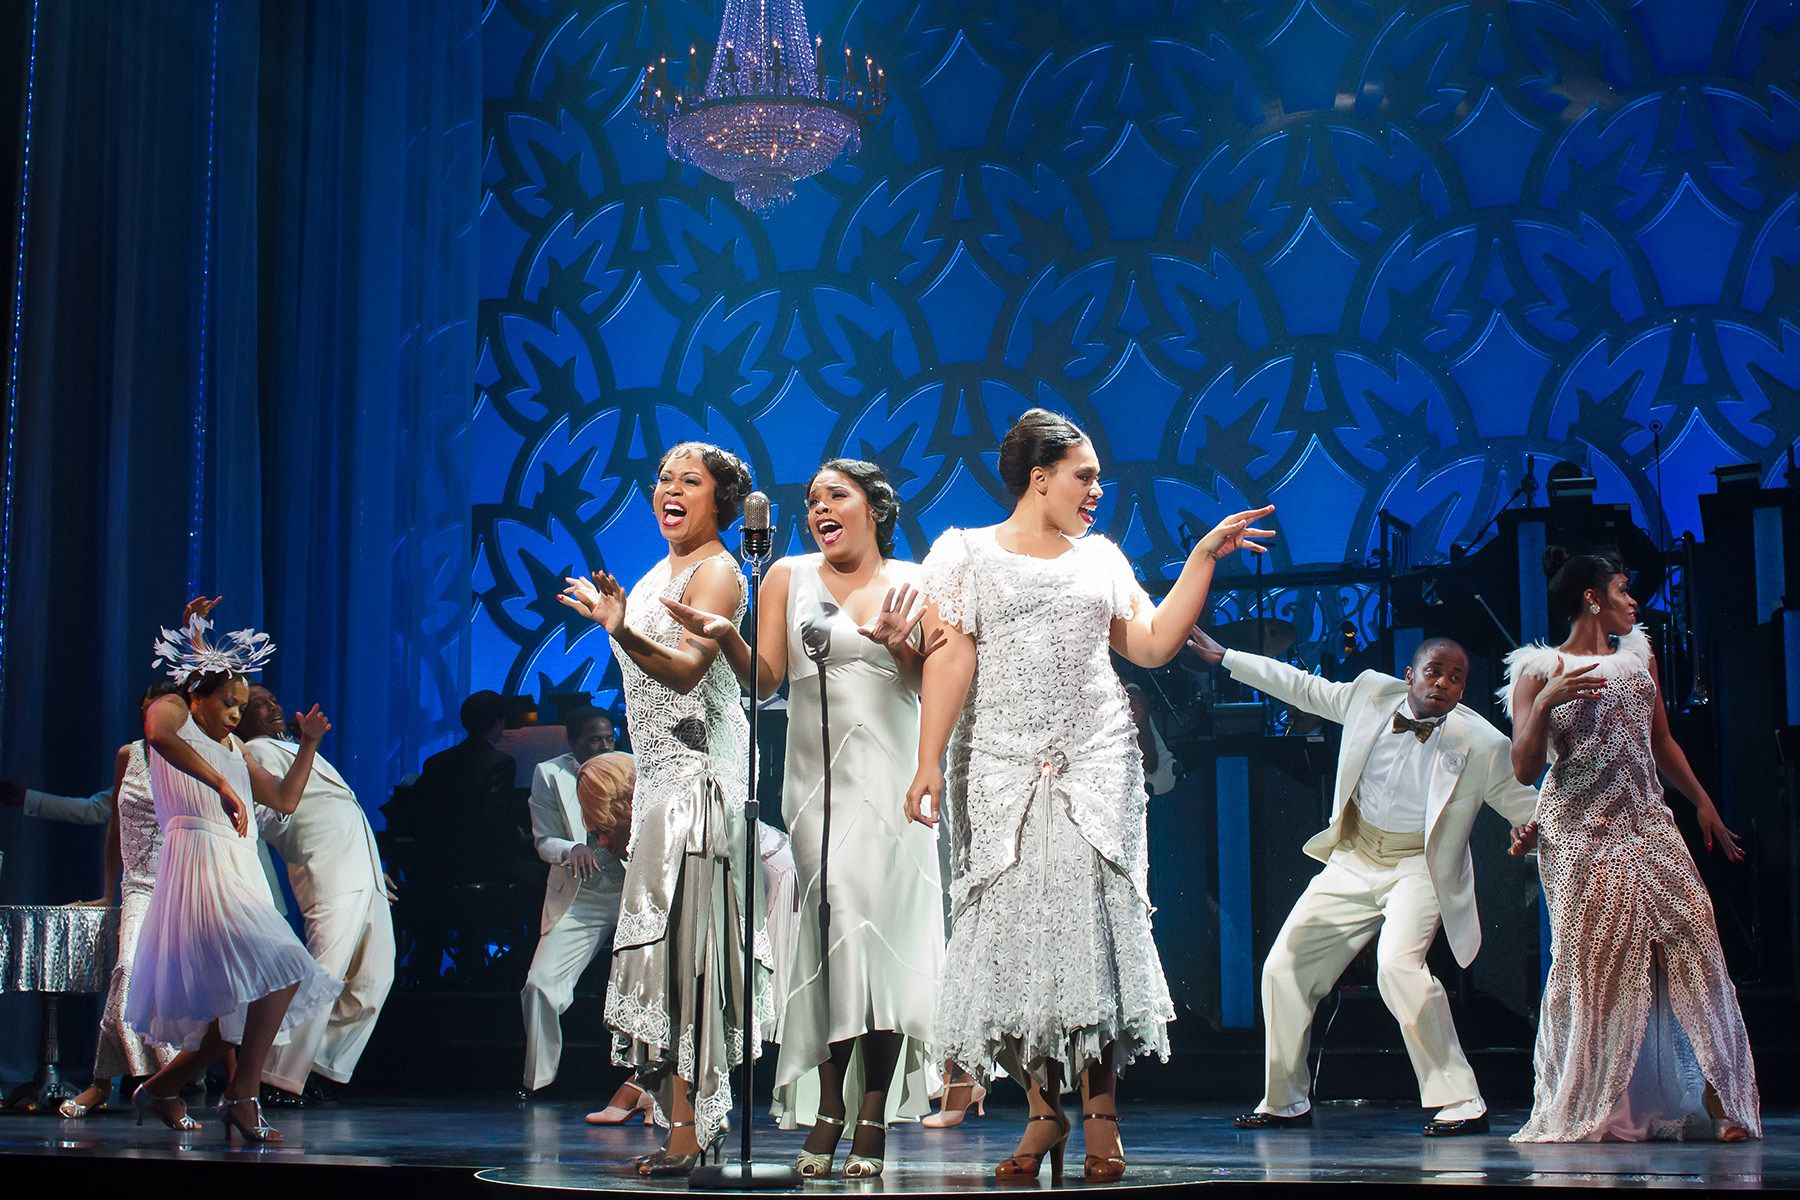 Rosena M. Hill Jackson, Bryonha Marie Parham, Carmen Ruby Floyd, and the rest of the cast perform the finale of Broadway's AFTER MIDNIGHT.